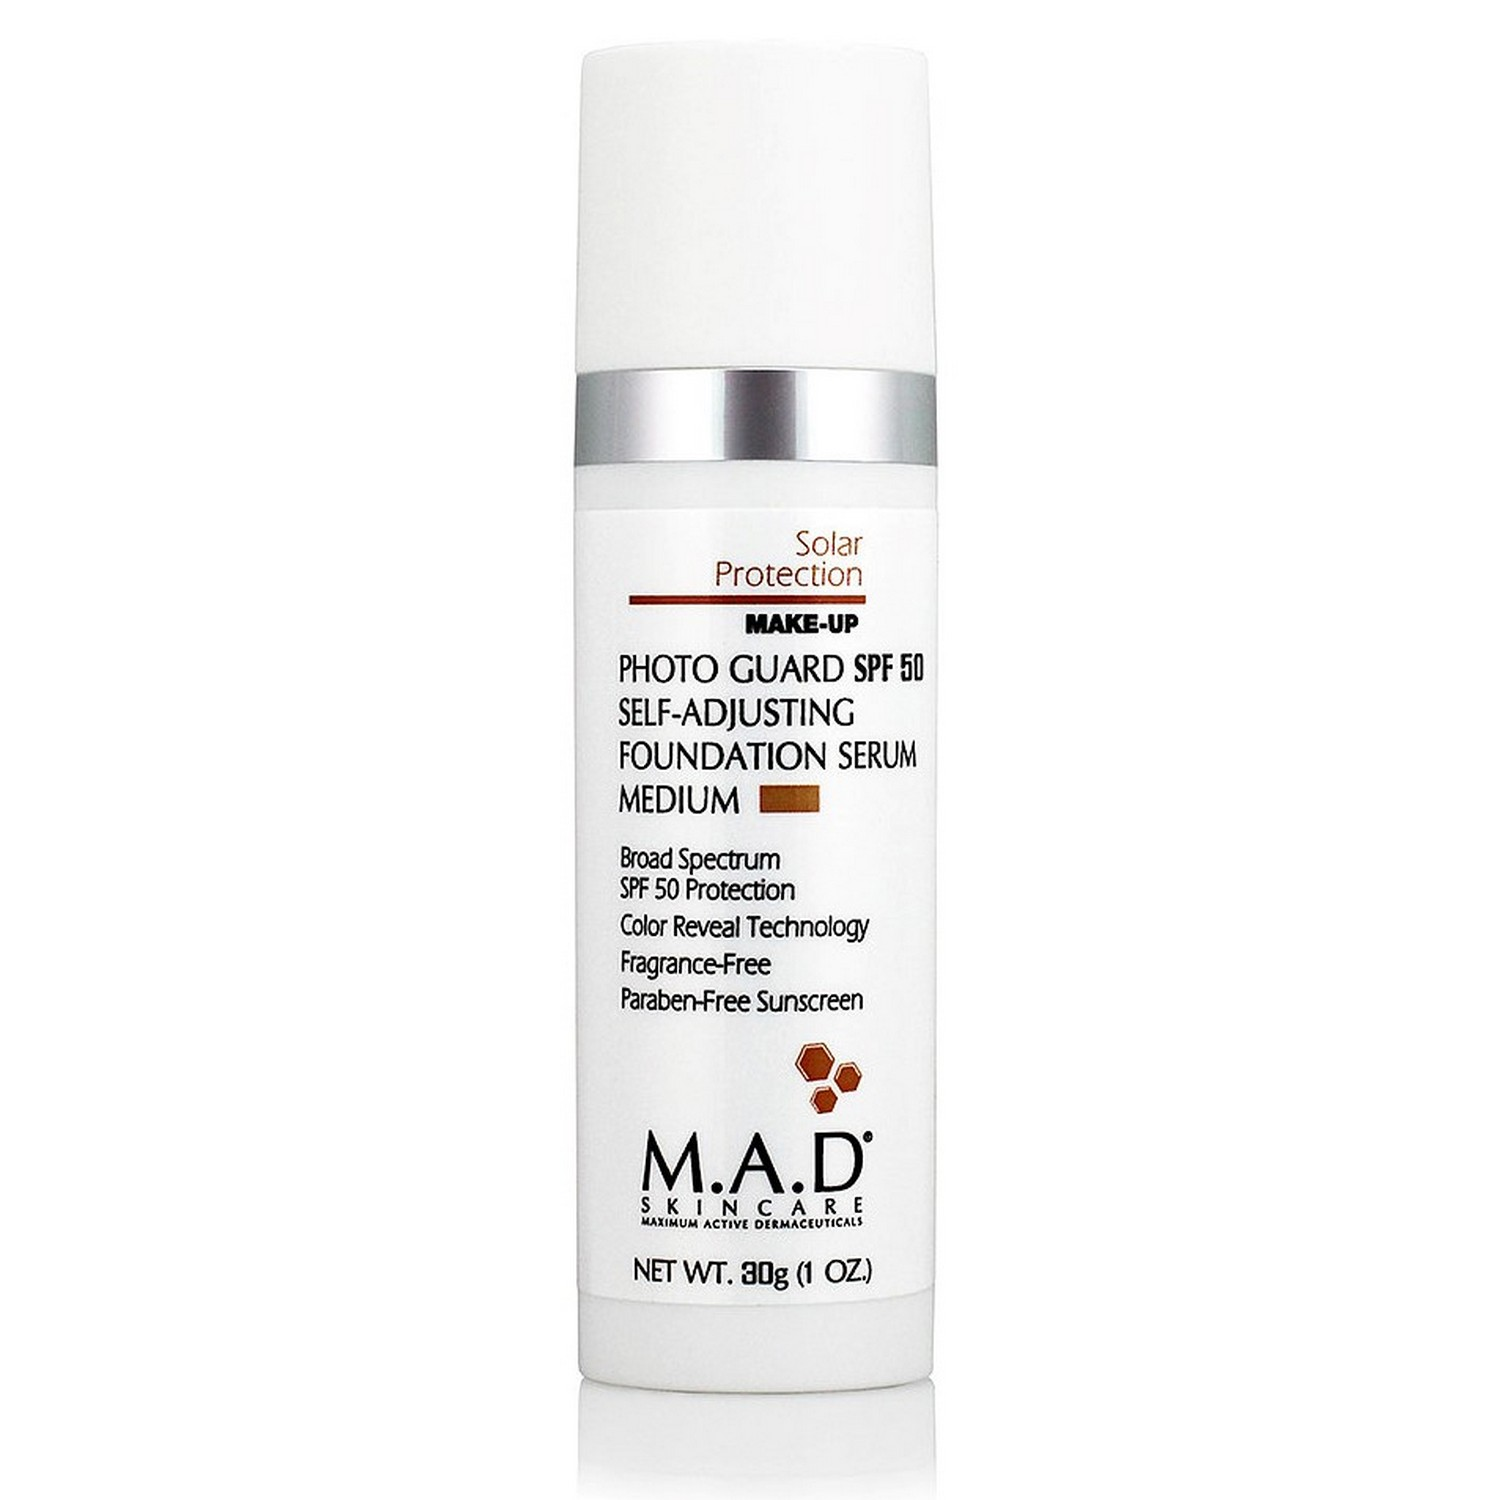 M.A.D SKINCARE PHOTO GUARD SPF 50 SELF-ADJUSTING FOUNDATION SERUM MEDIUM (30 g / 1.0 oz)